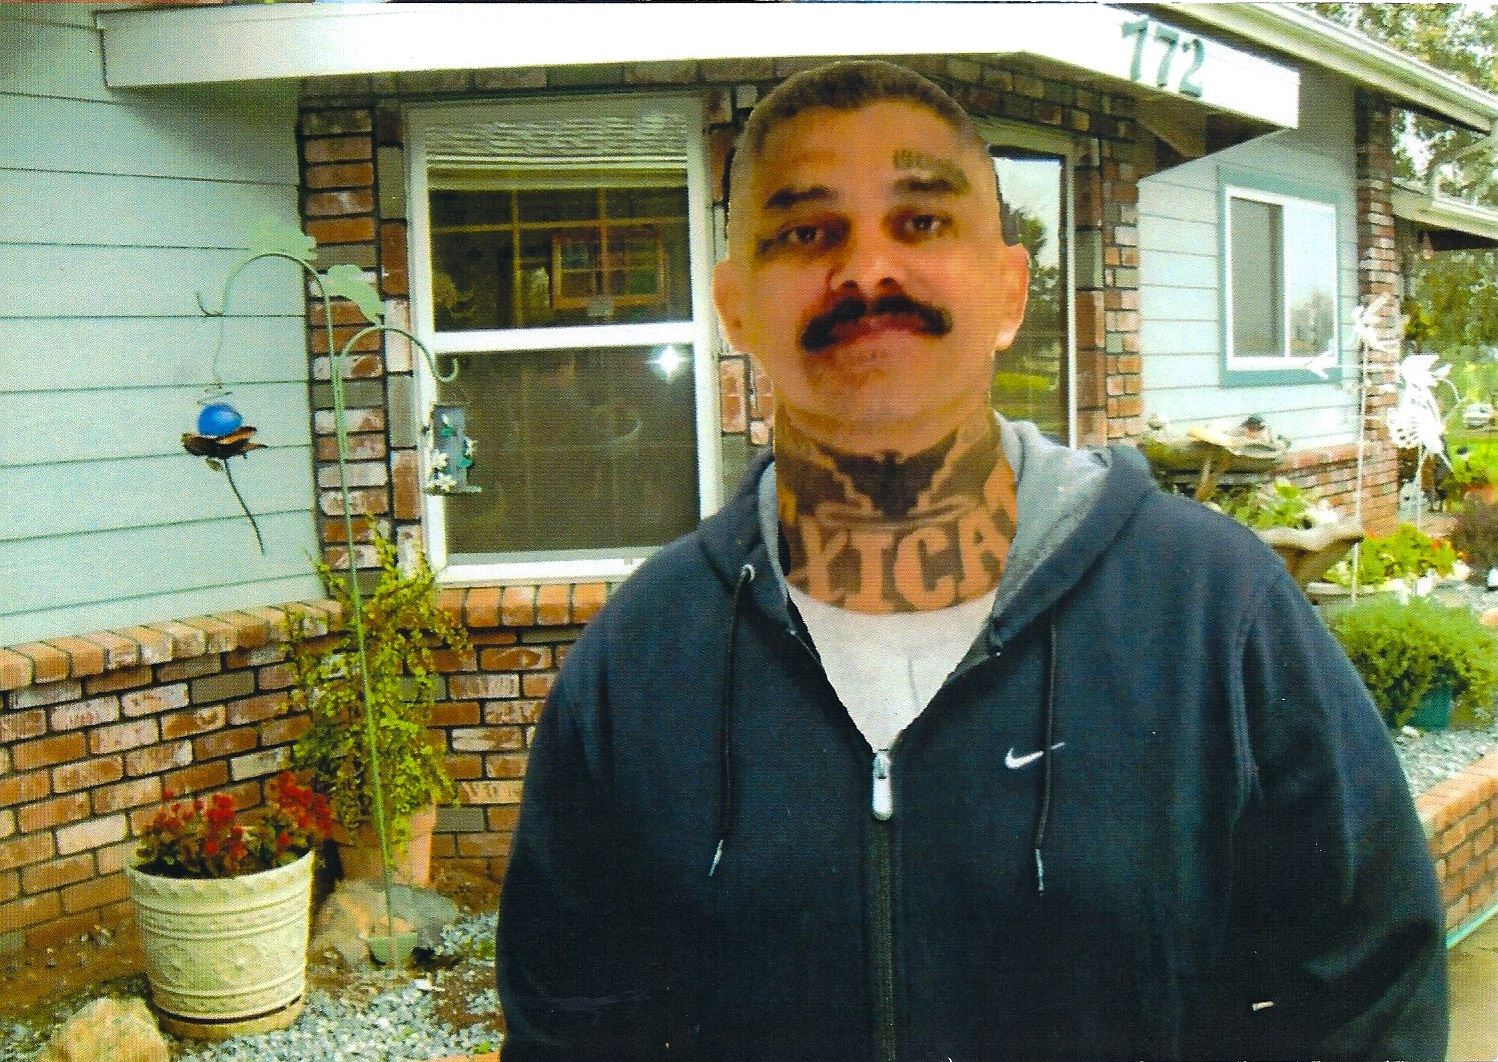 Pancho villa and tattoo pictures to pin on pinterest for Emiliano zapata tattoo